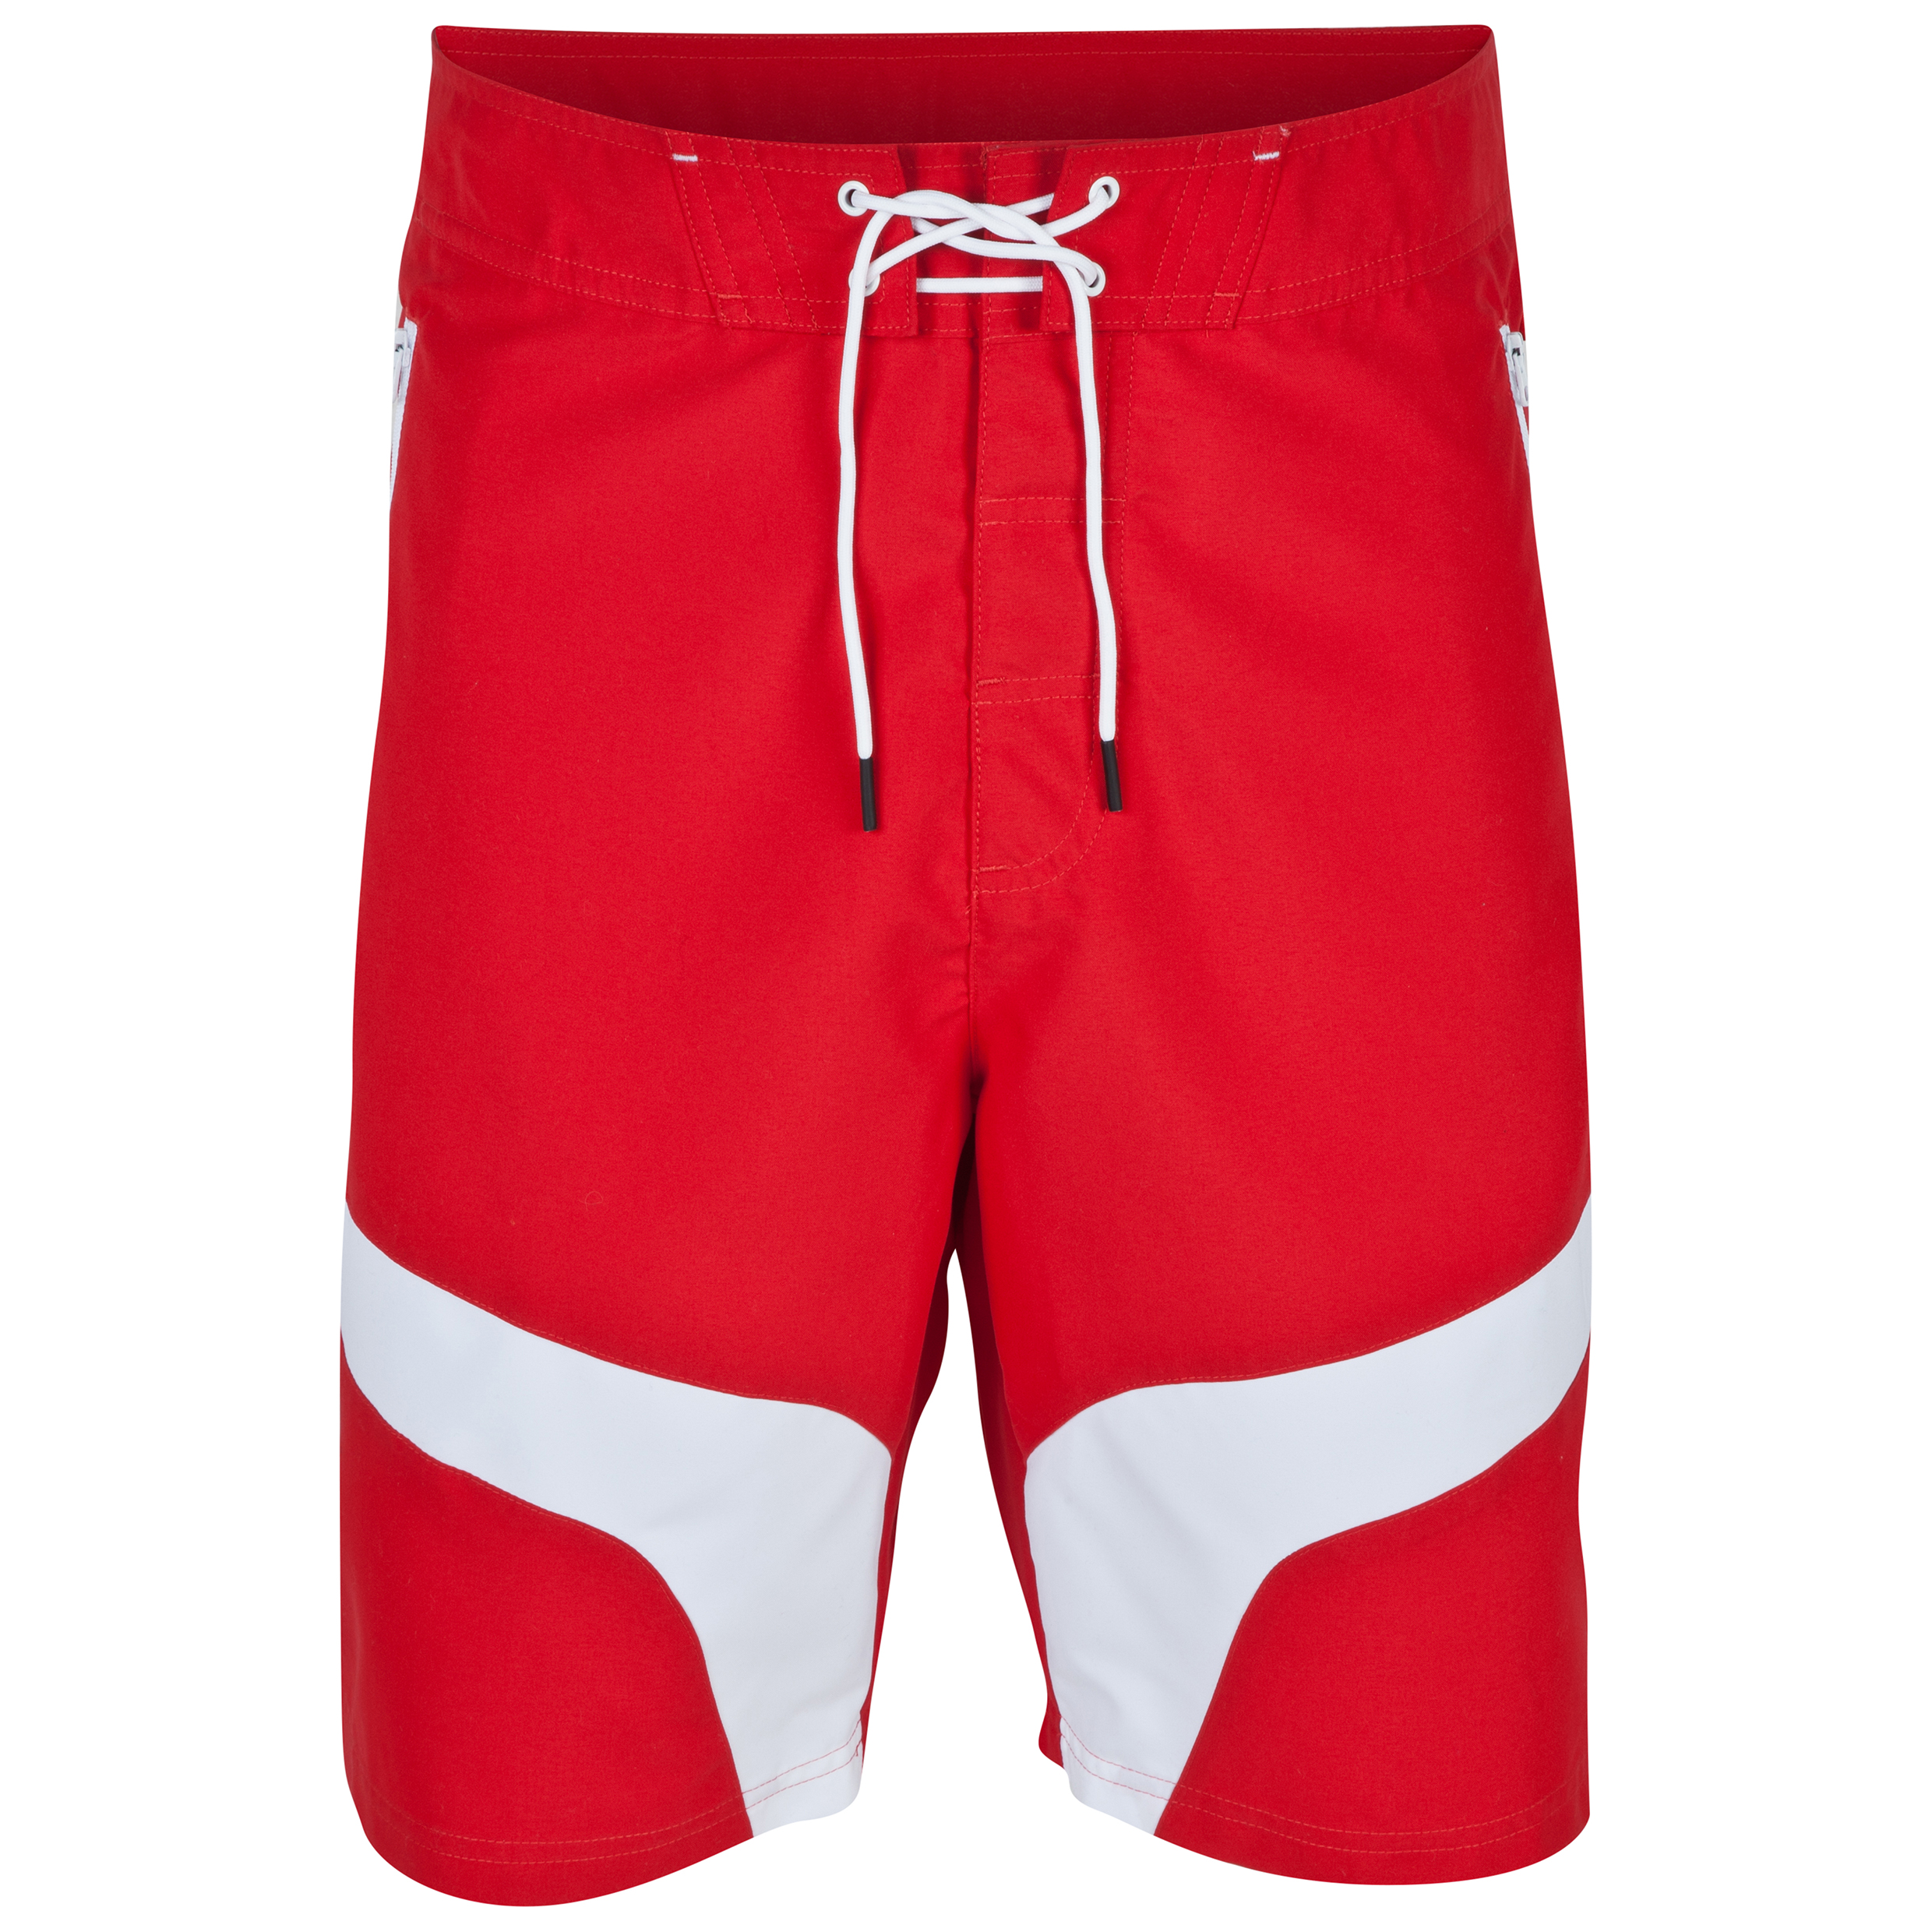 Scuderia Ferrari Board Shorts Red